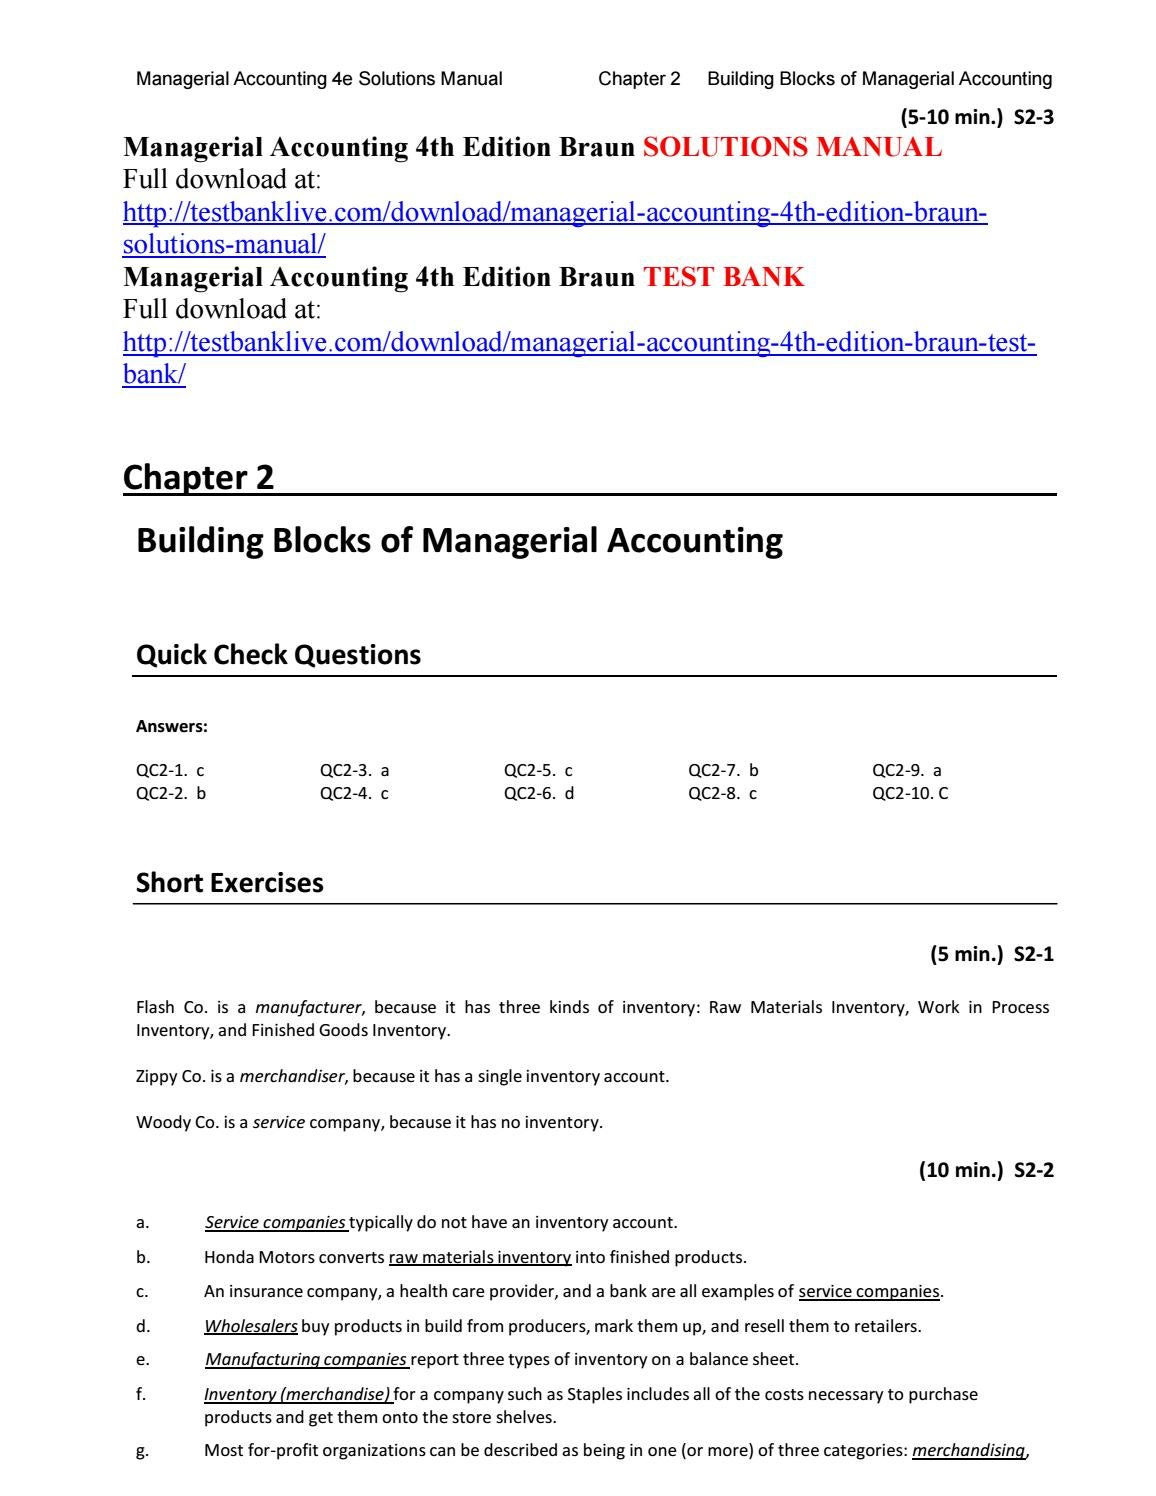 Managerial accounting 4th edition braun solutions manual by veque111 managerial accounting 4th edition braun solutions manual by veque111 issuu fandeluxe Image collections